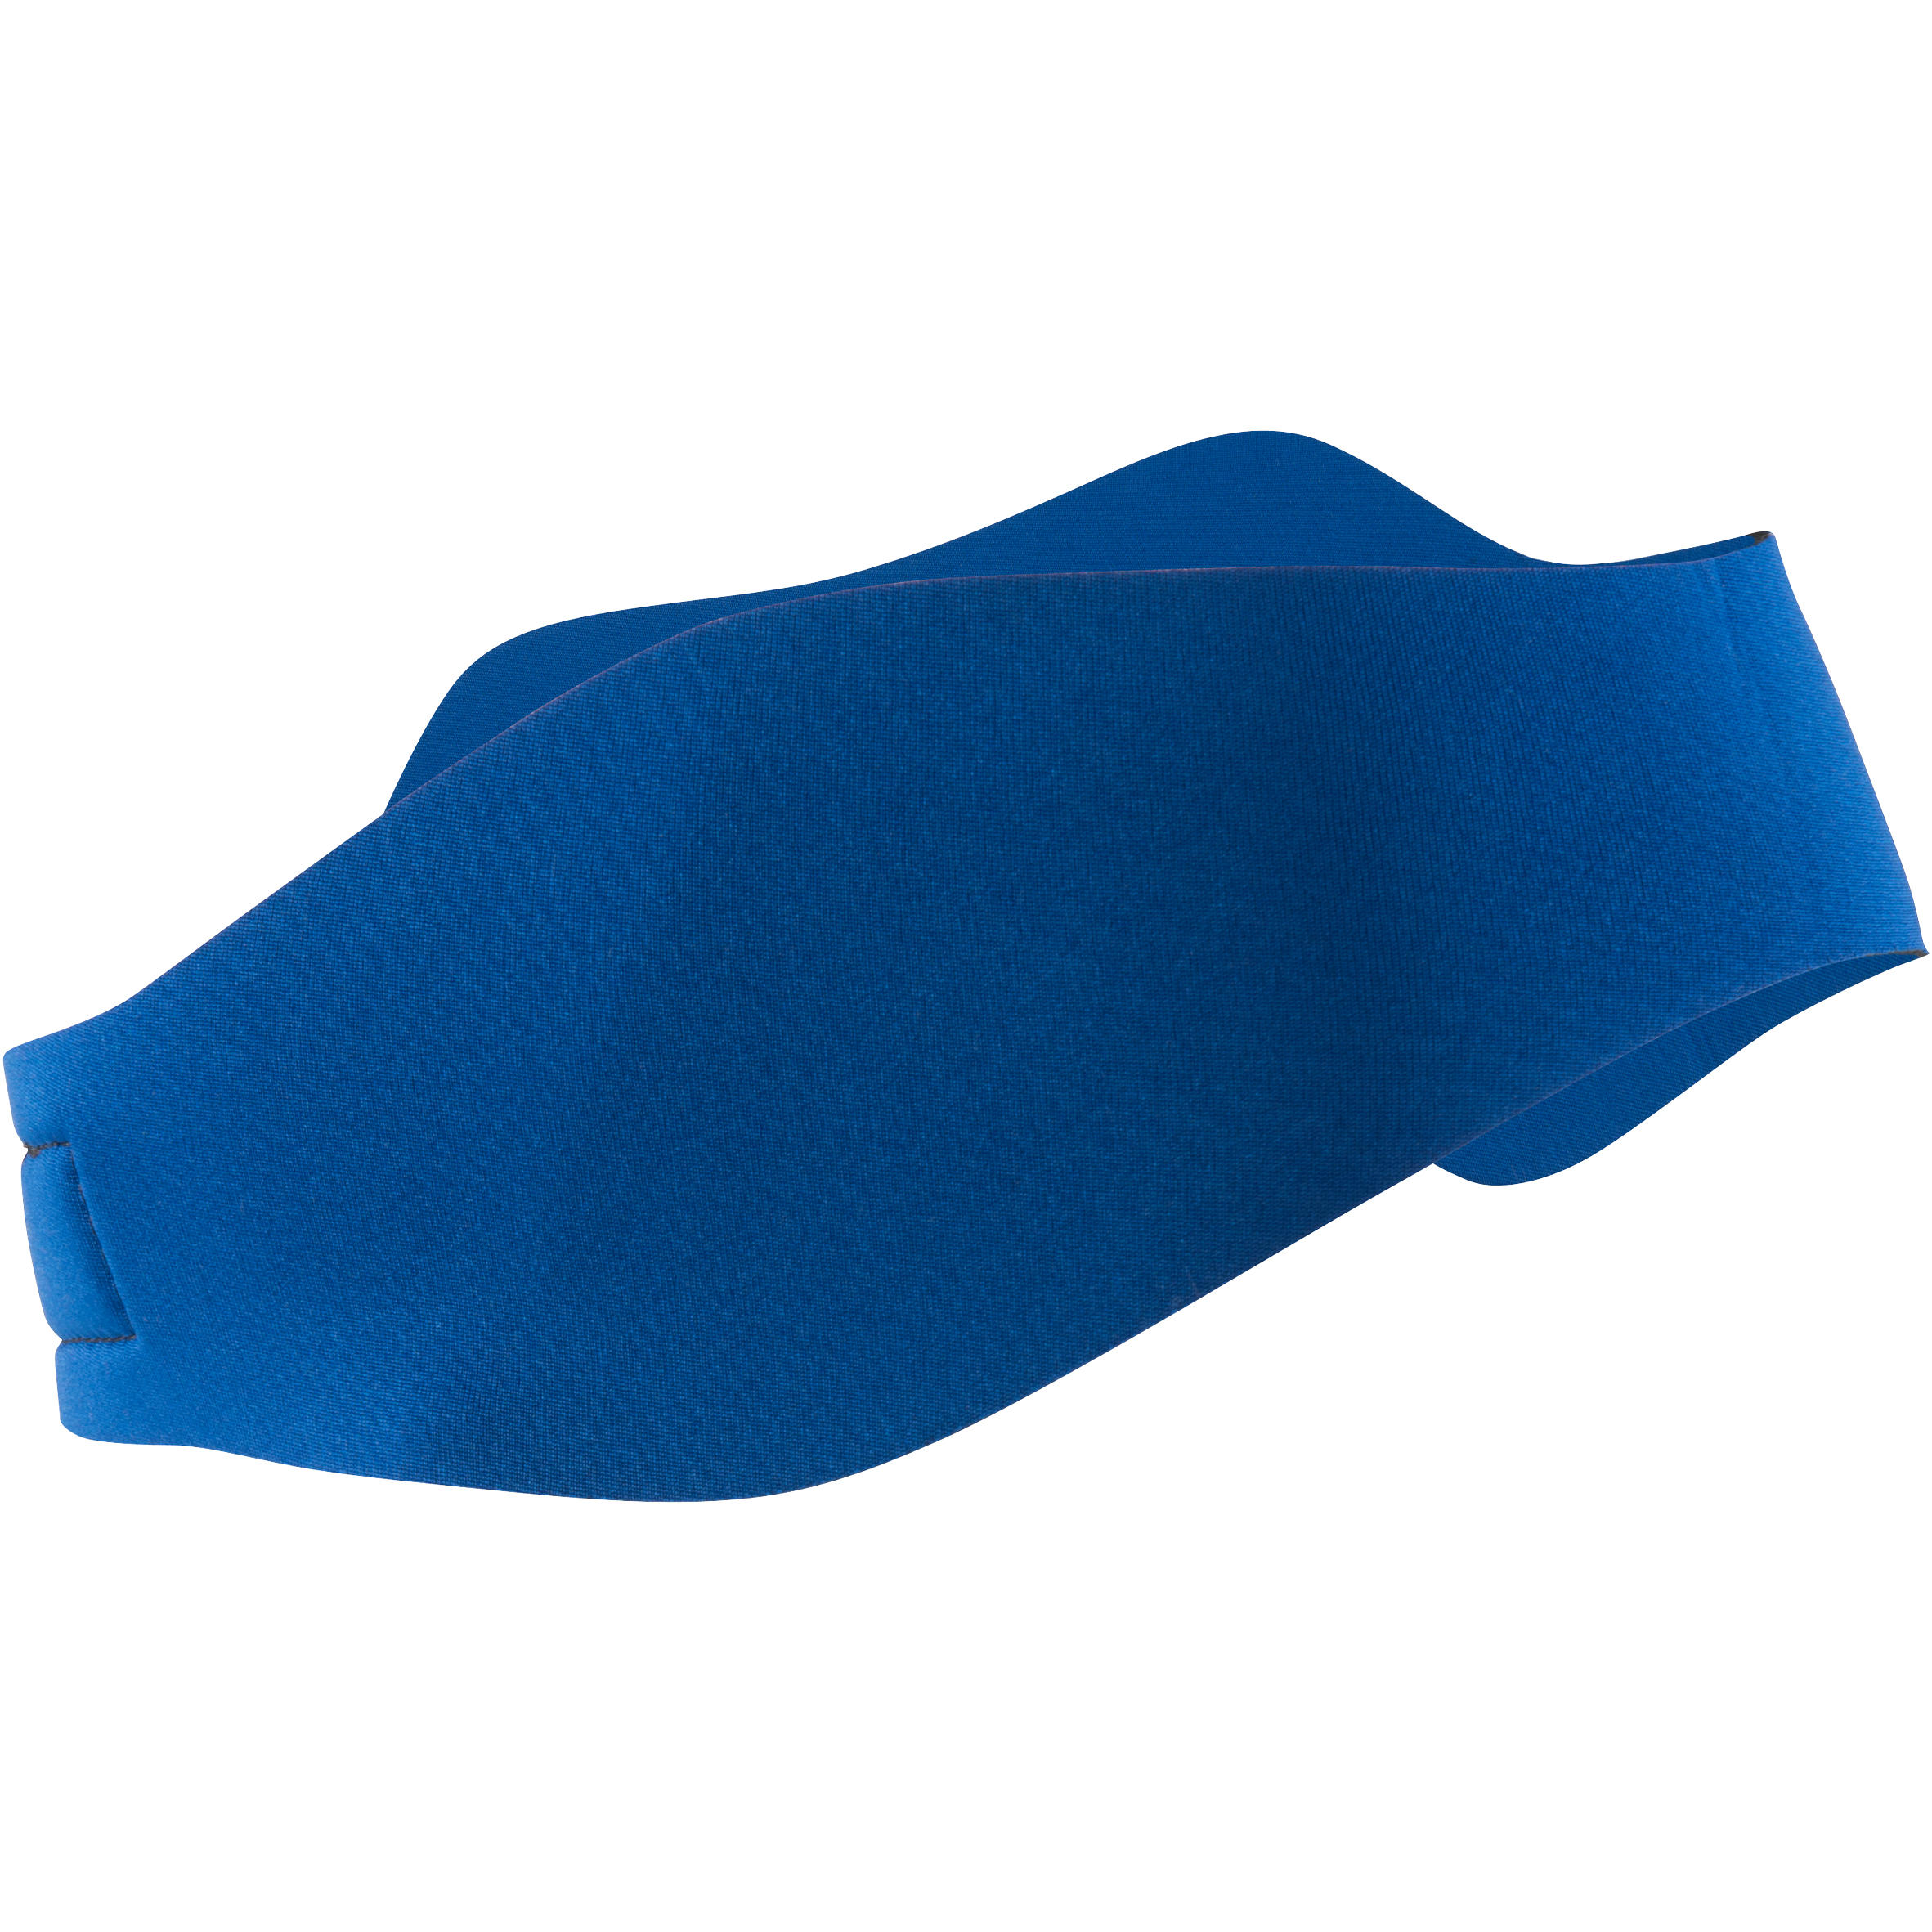 Adult swim head band- Blue